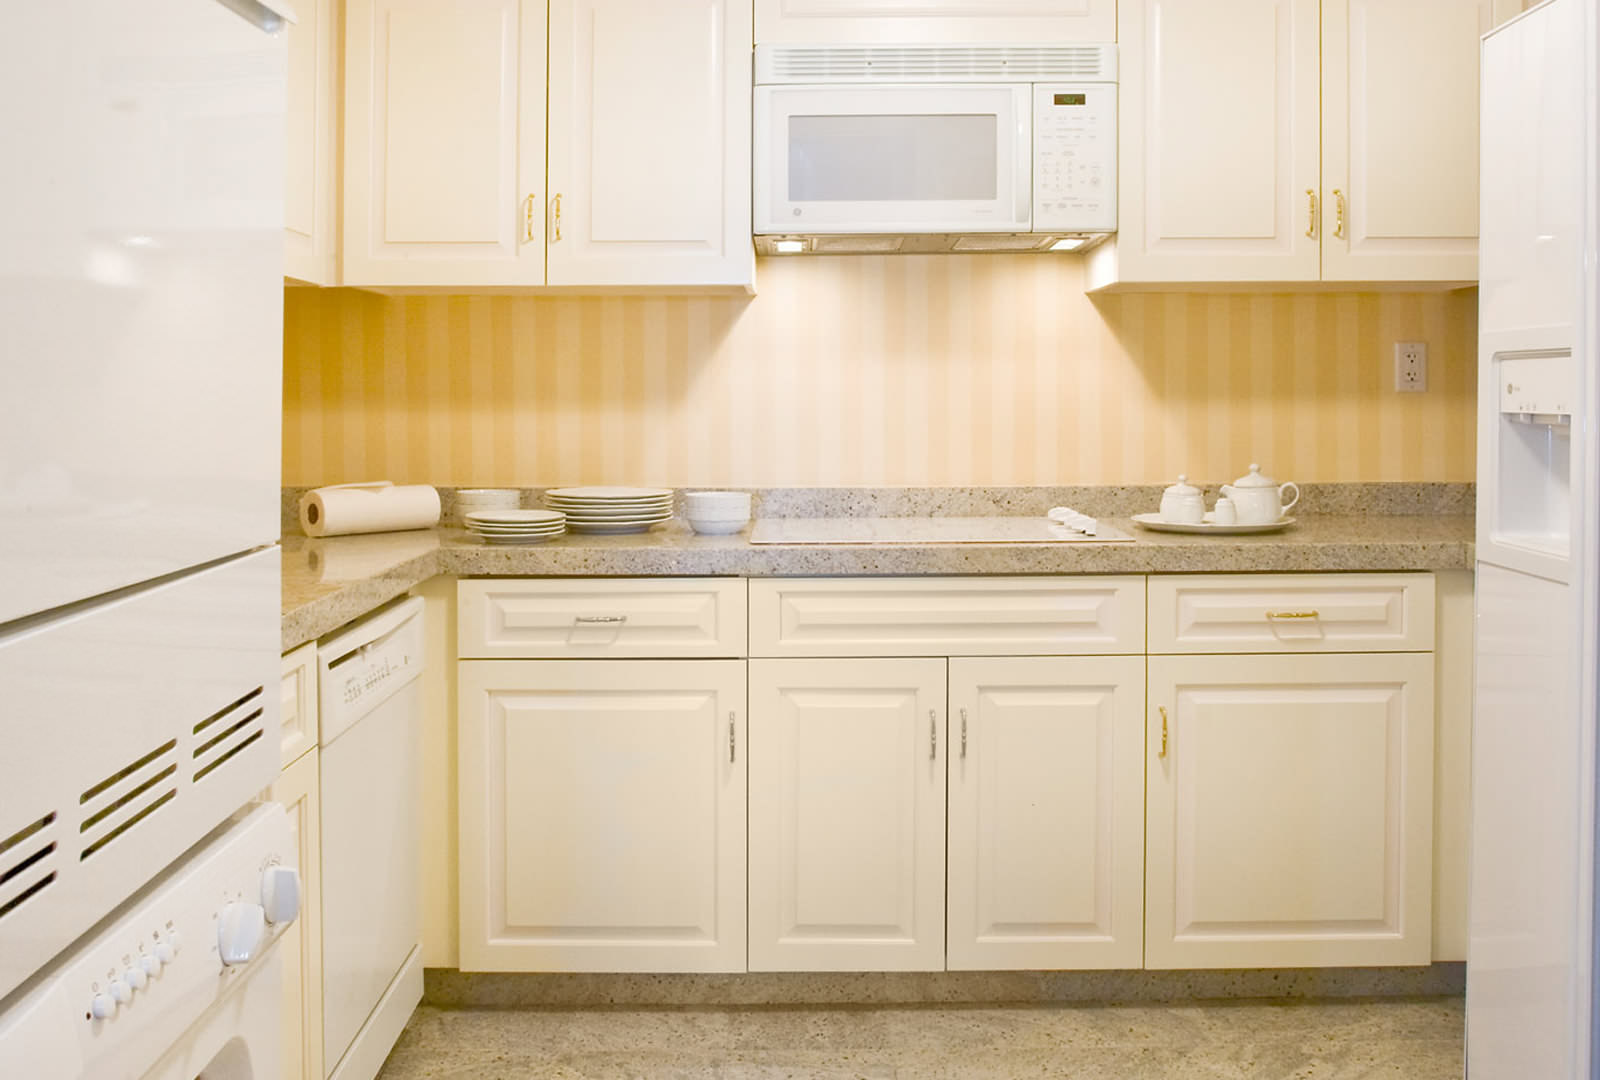 Grand America Hotel kitchen suite with white cabinets and white appliances